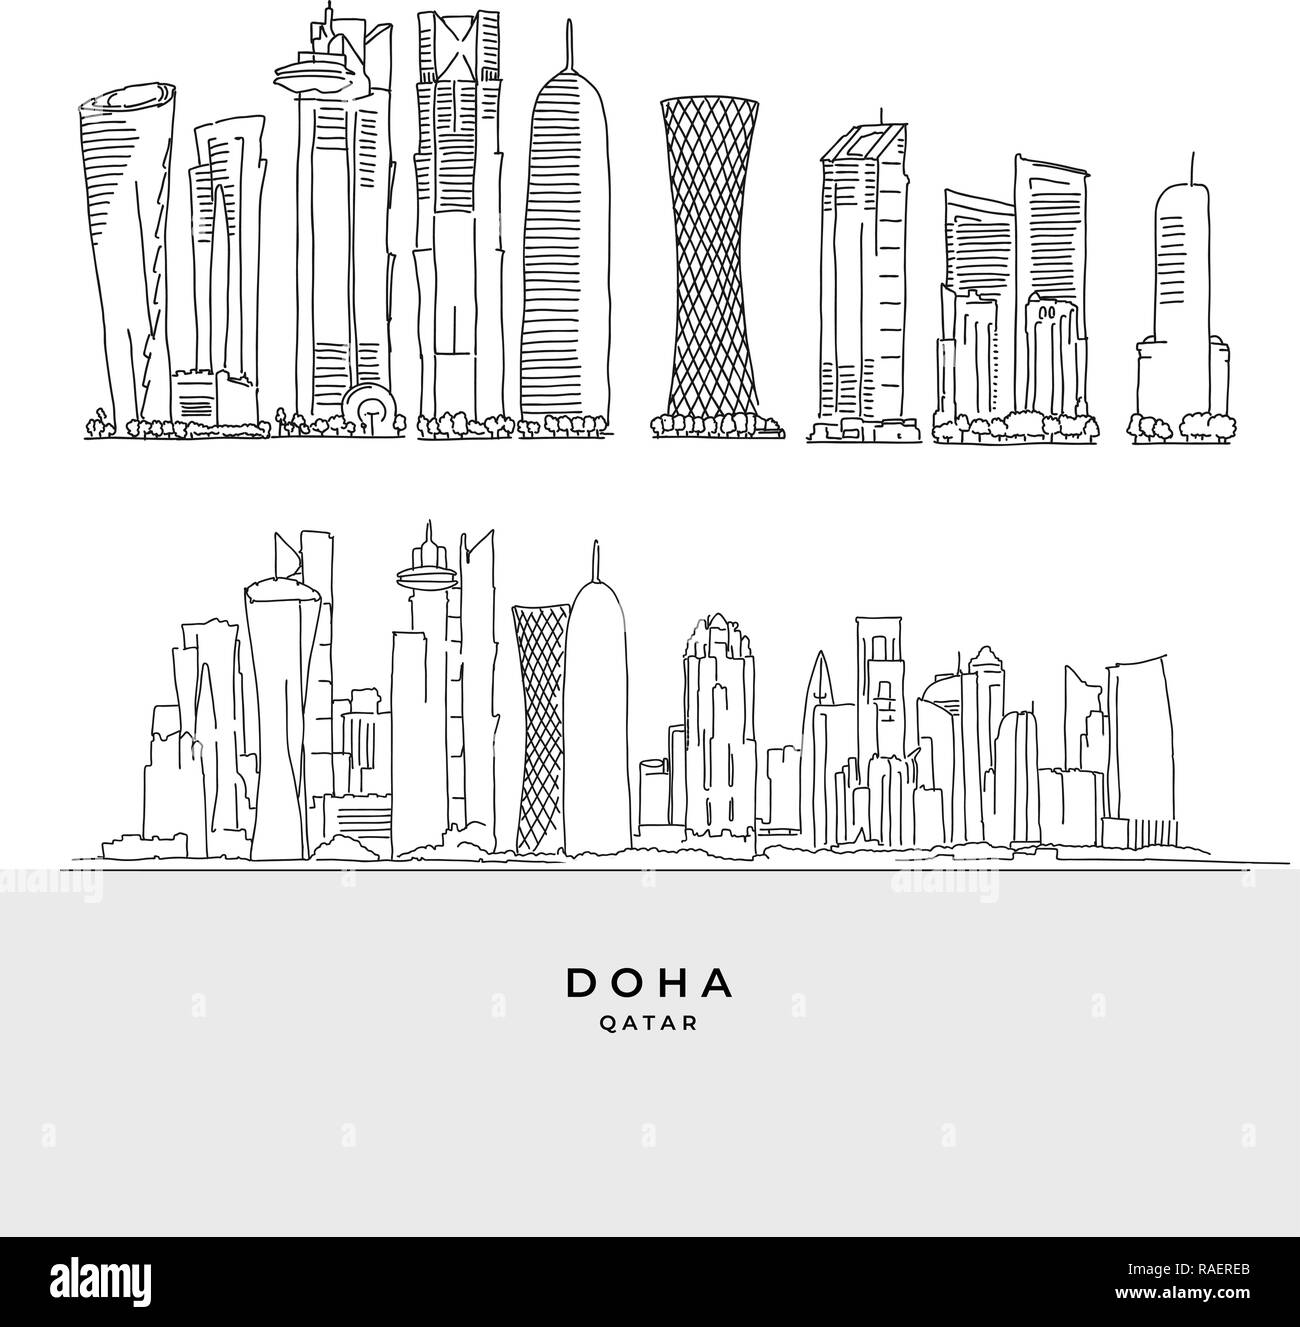 Doha Qatar skyscaper set. Hand-drawn vector illustration. Famous travel destinations series. - Stock Vector